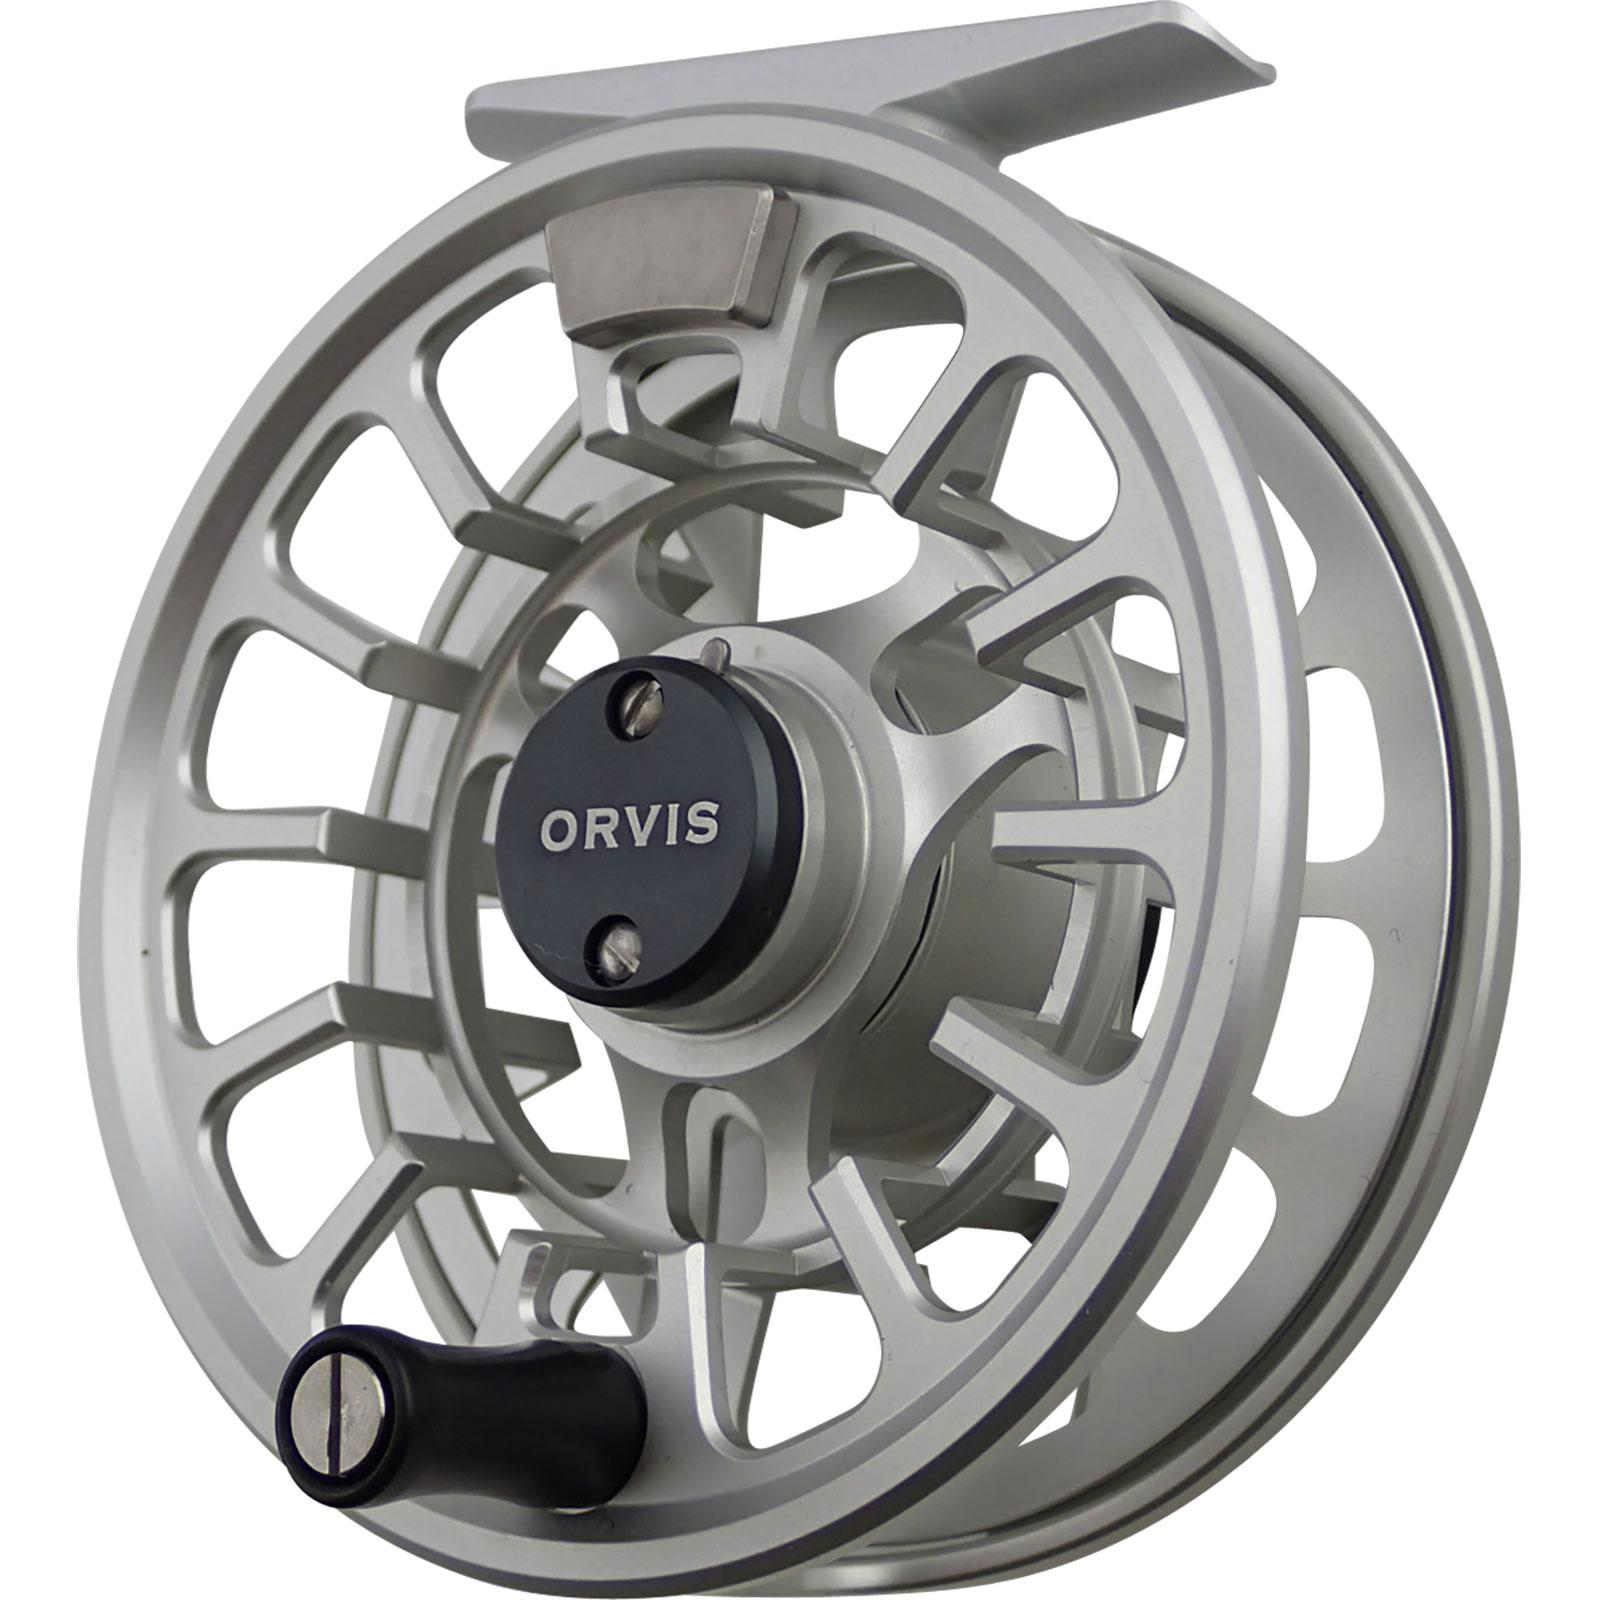 Orvis Hydros Fly Reel Silver Angled